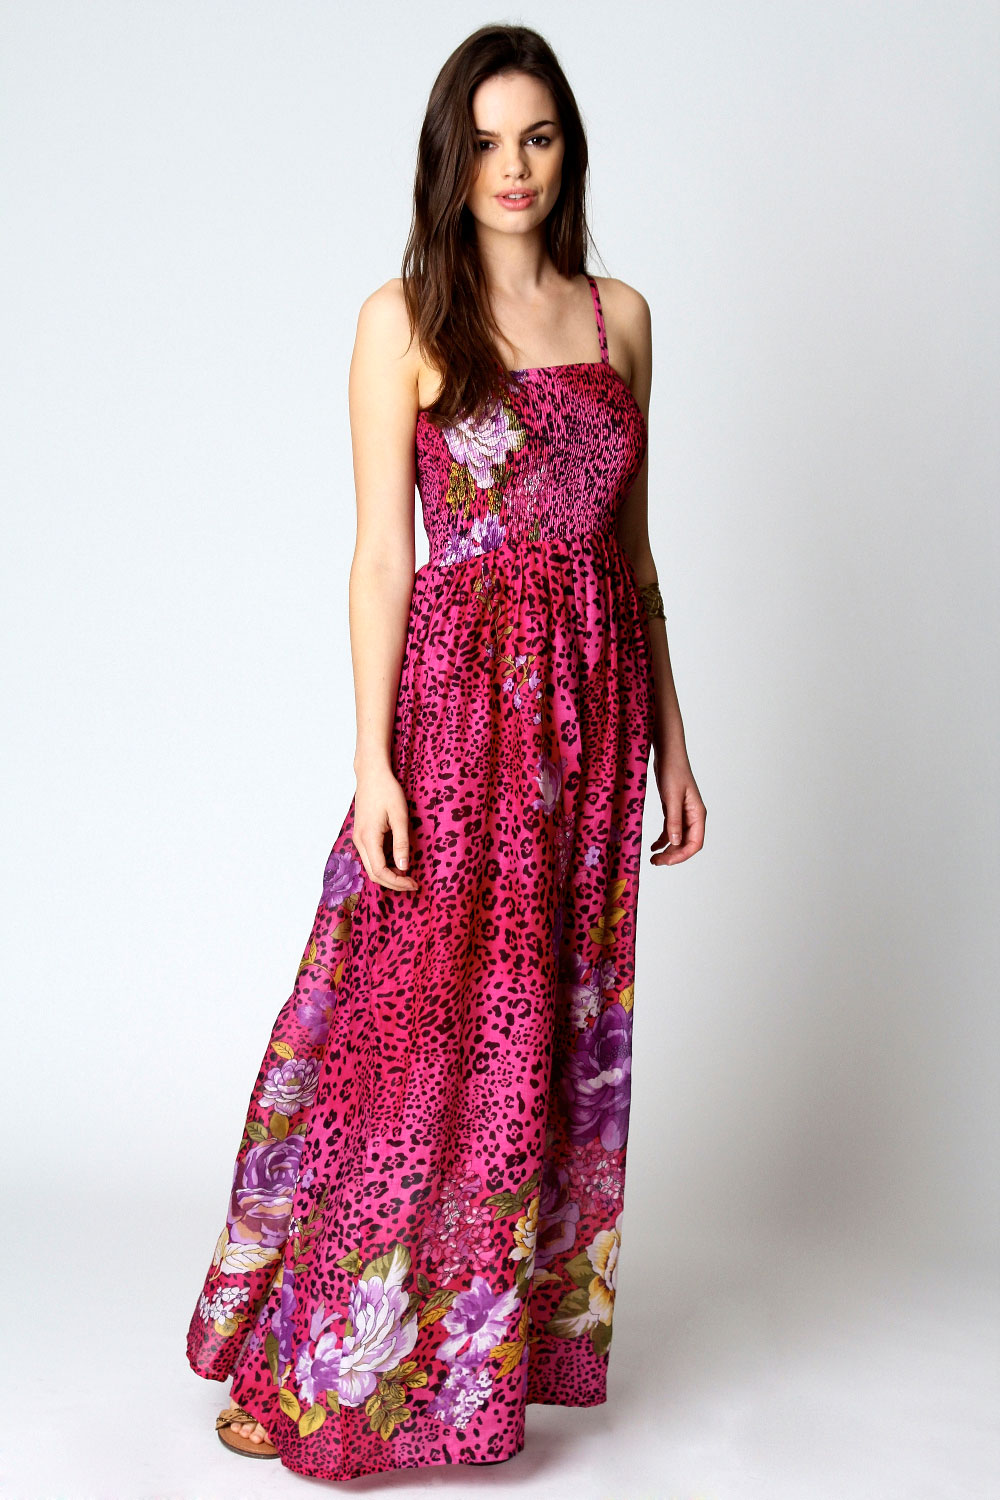 Boohoo-Wendy-Leopard-Flower-Print-Bandeau-Maxi-Dress-2-Colours